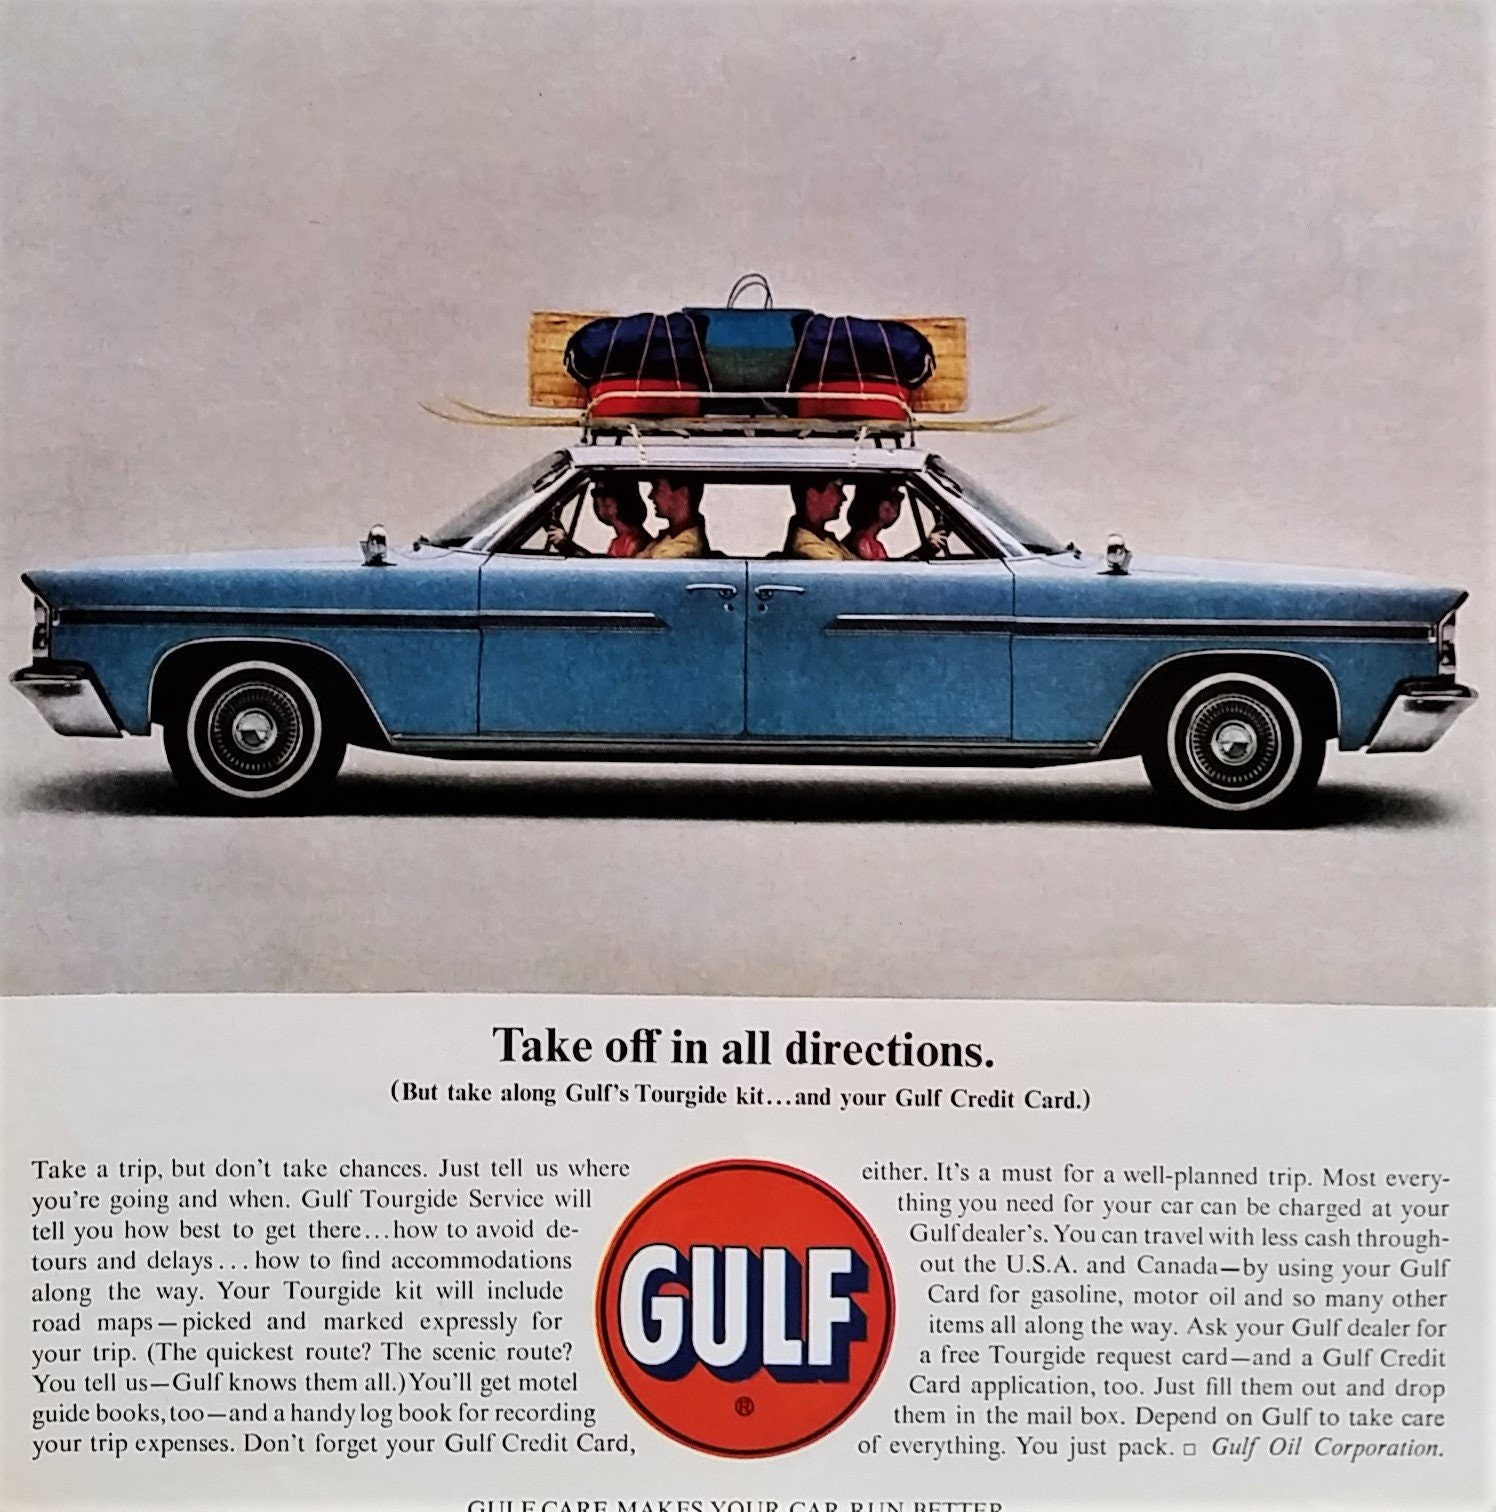 Gulf Oil Push Me Pull Me Car 'Take off in all directions ' Husband